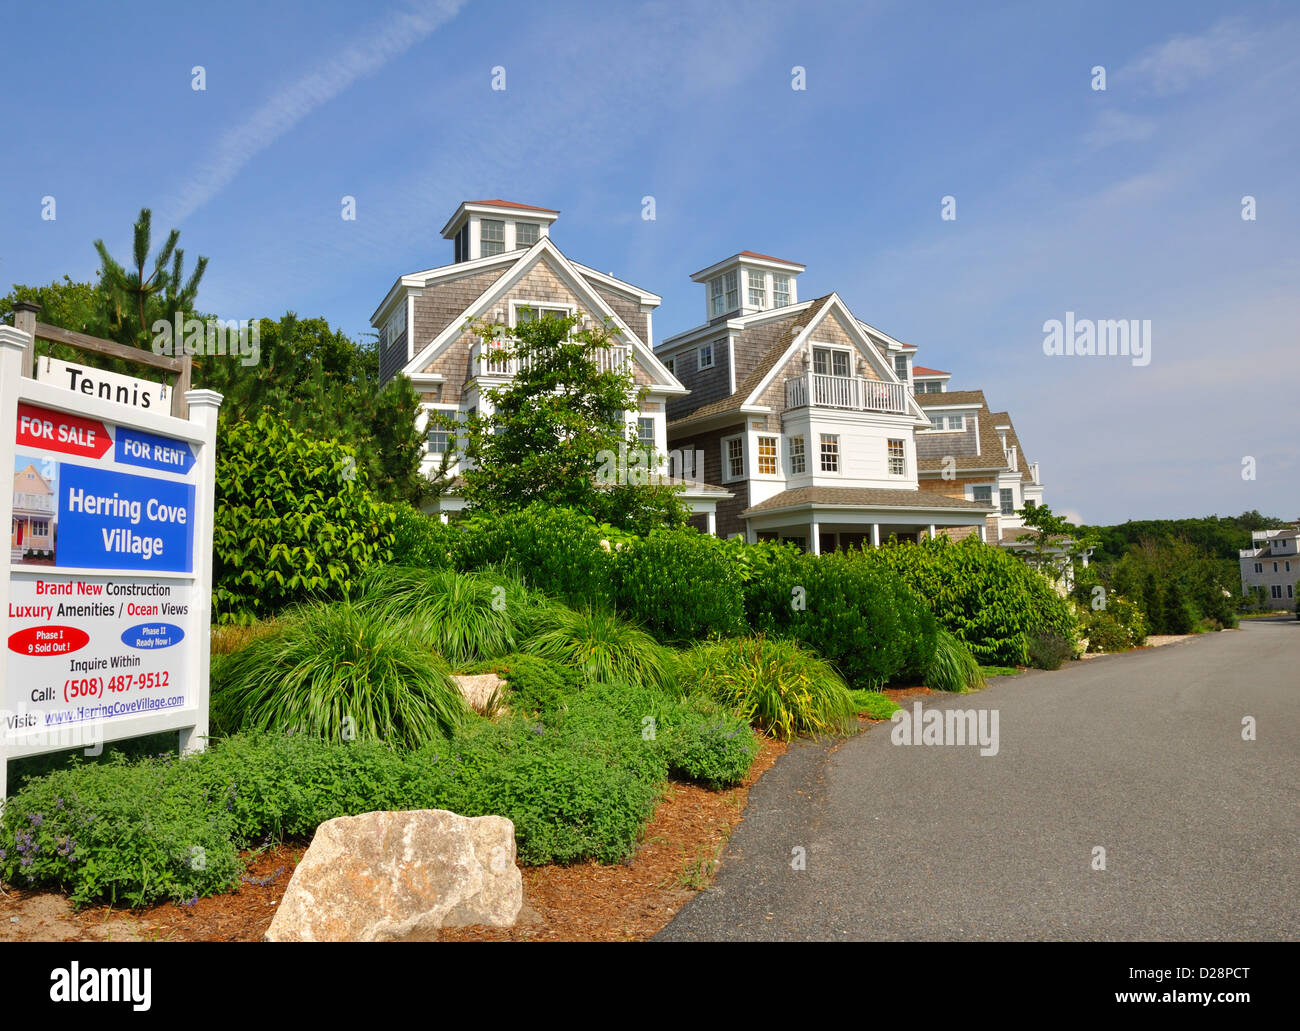 Houses For Sale On Cape Cod, Massachusetts, USA